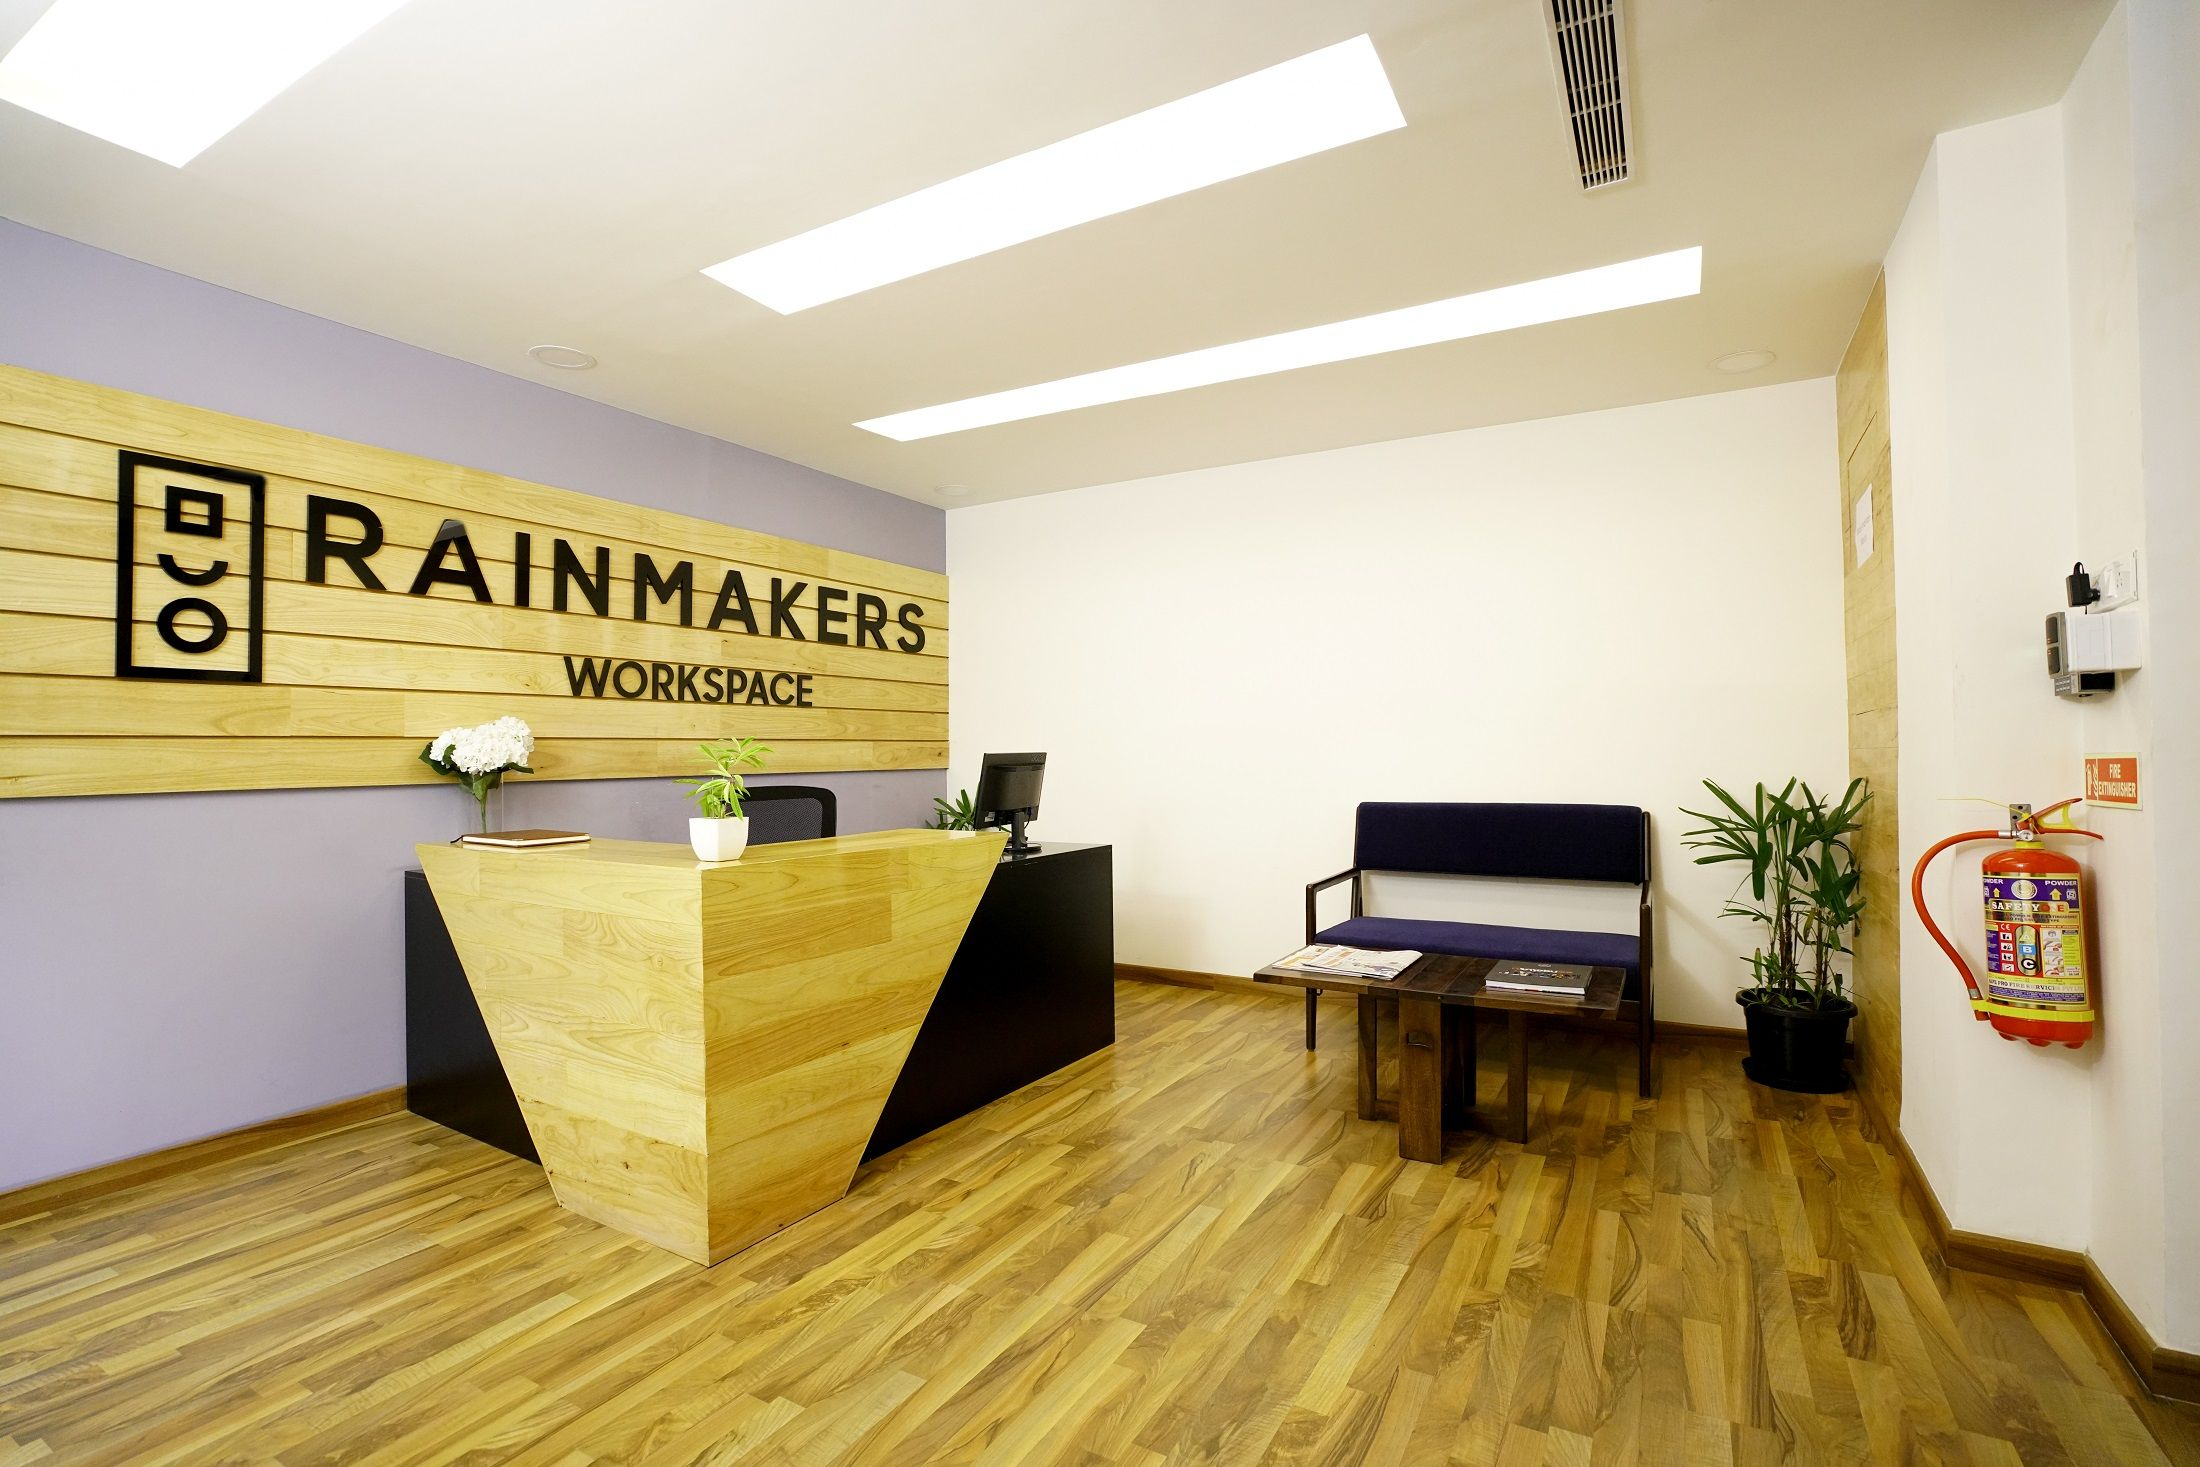 Rainmakers workspace